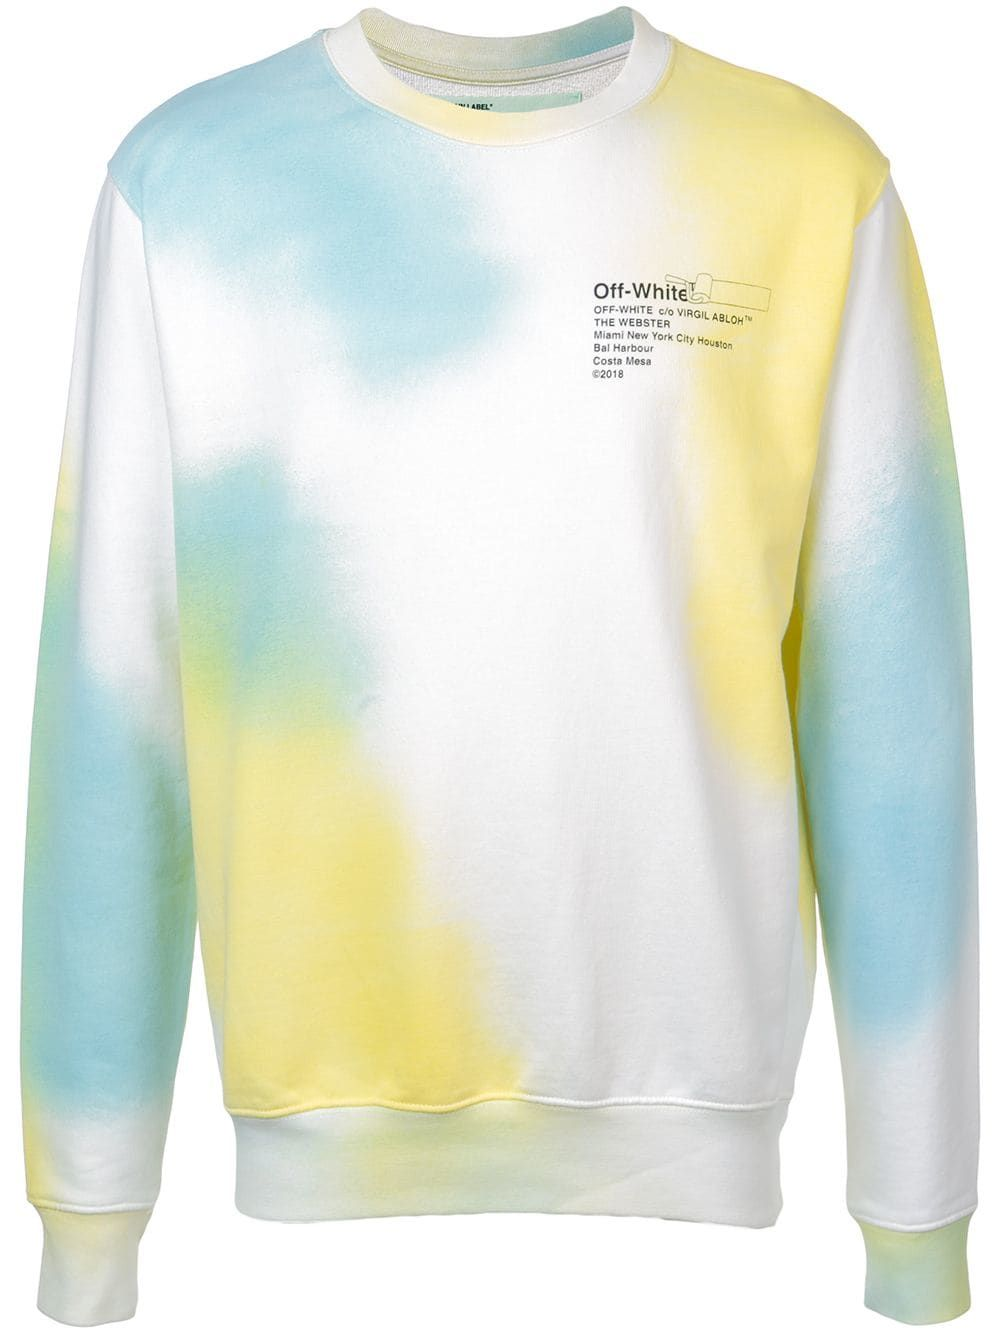 4072475dffef OFF-WHITE OFF-WHITE TIE-DYE SWEATSHIRT.  off-white  cloth